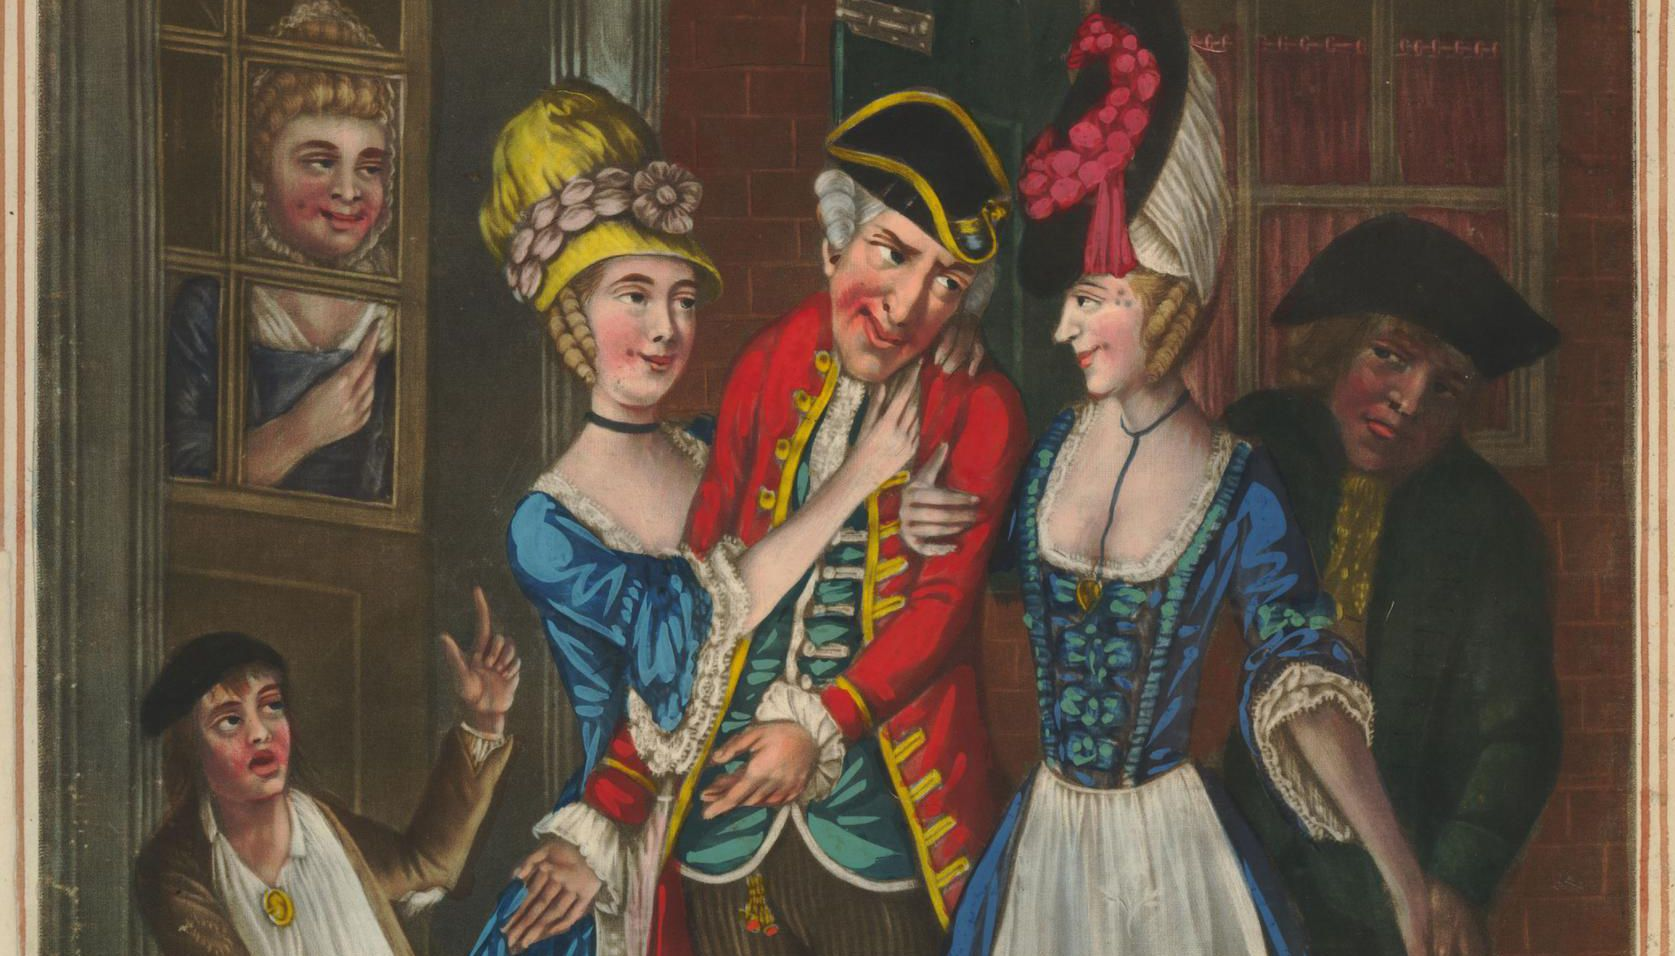 An Evenings Invitation; with a Wink from the Bagnio (1773), depicting a man being led down a street by two prostitutes in Georgian London. © The Trustees of the British Museum